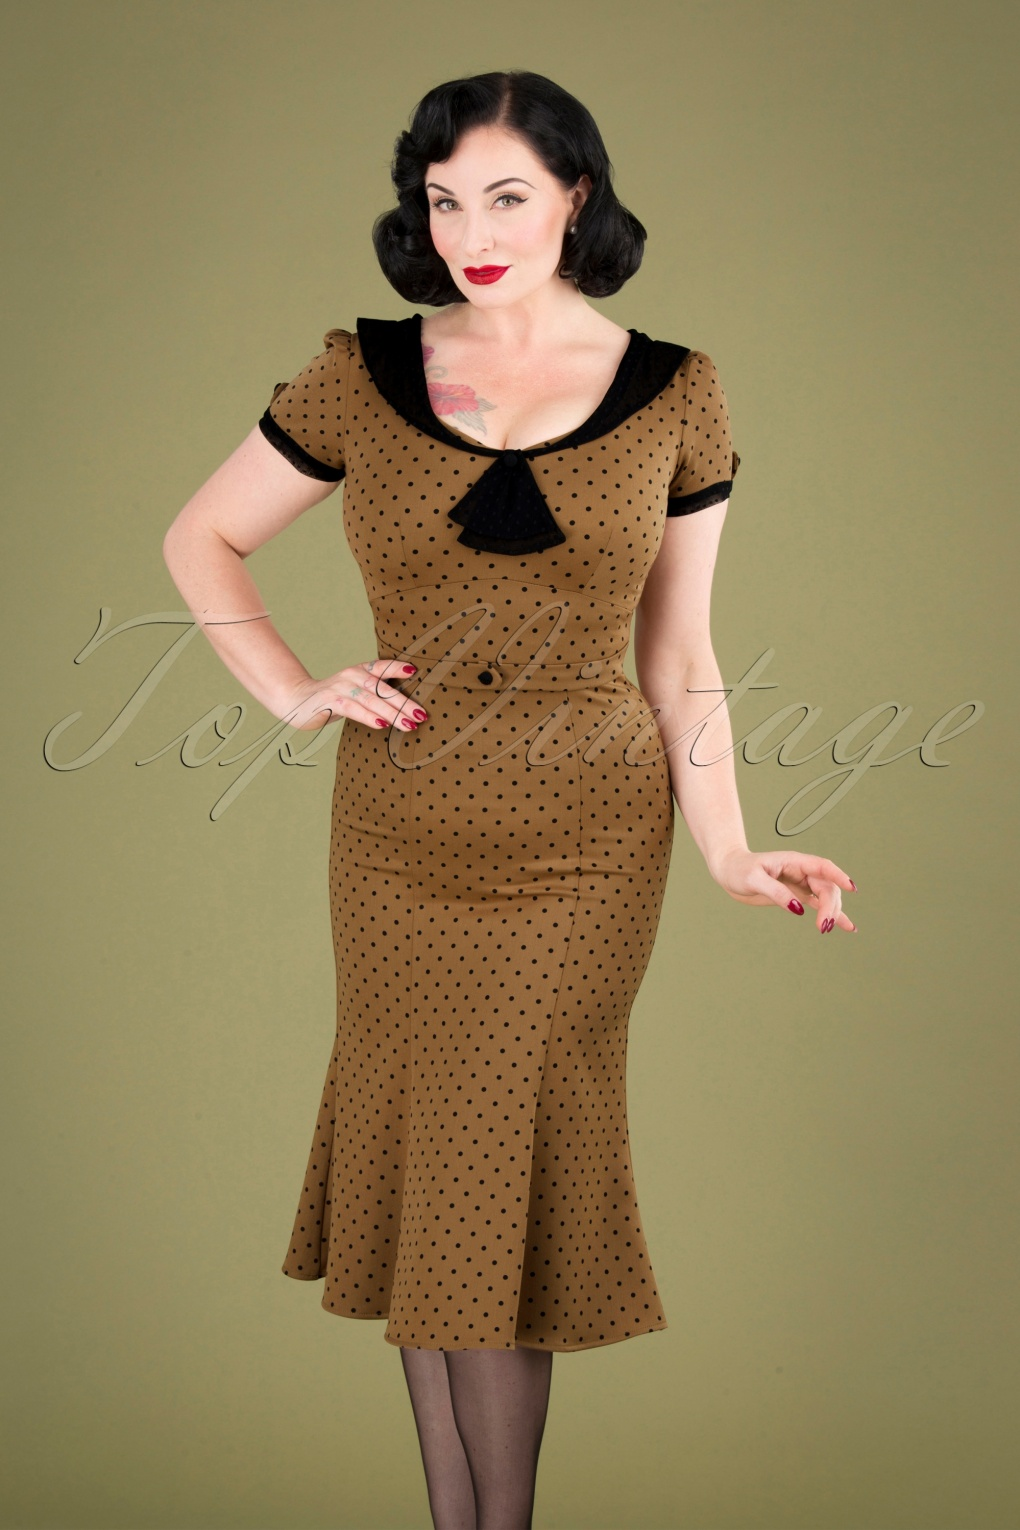 1940s Dresses | 40s Dress, Swing Dress 40s Raileen Polkadot Pencil Dress in Cappuccino £107.70 AT vintagedancer.com